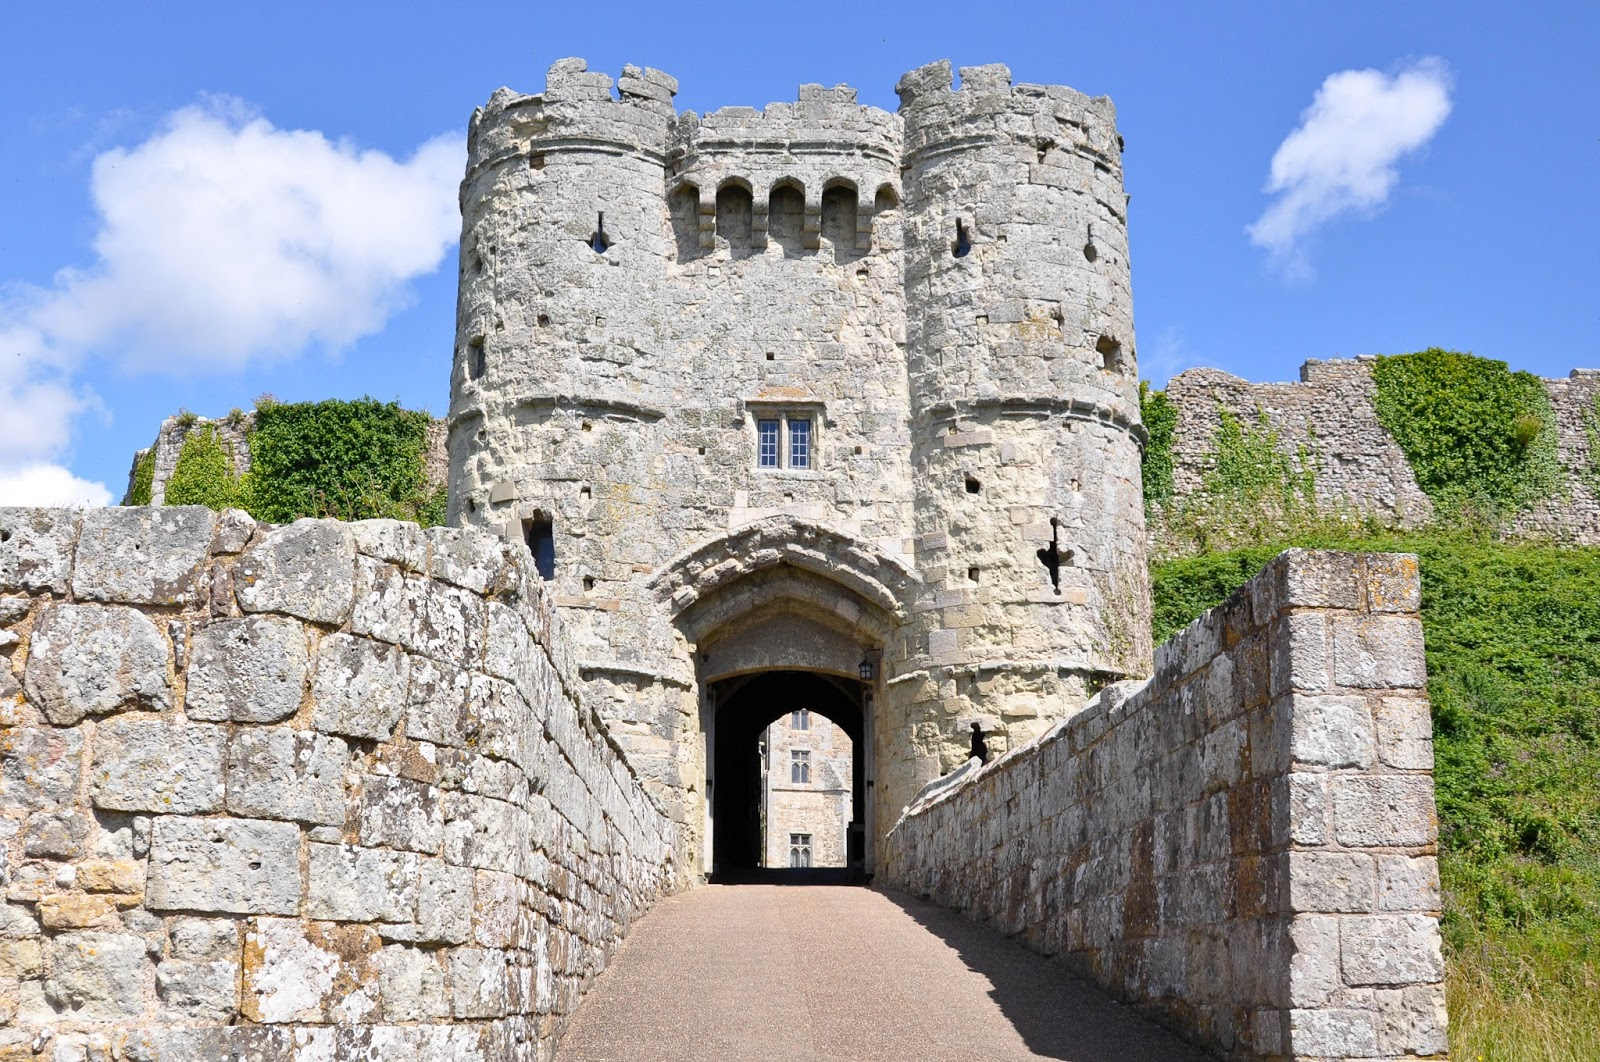 The entrance to the castle, Carisbrook Castle, Isle of Wight, UK - www.rossiwrites.com